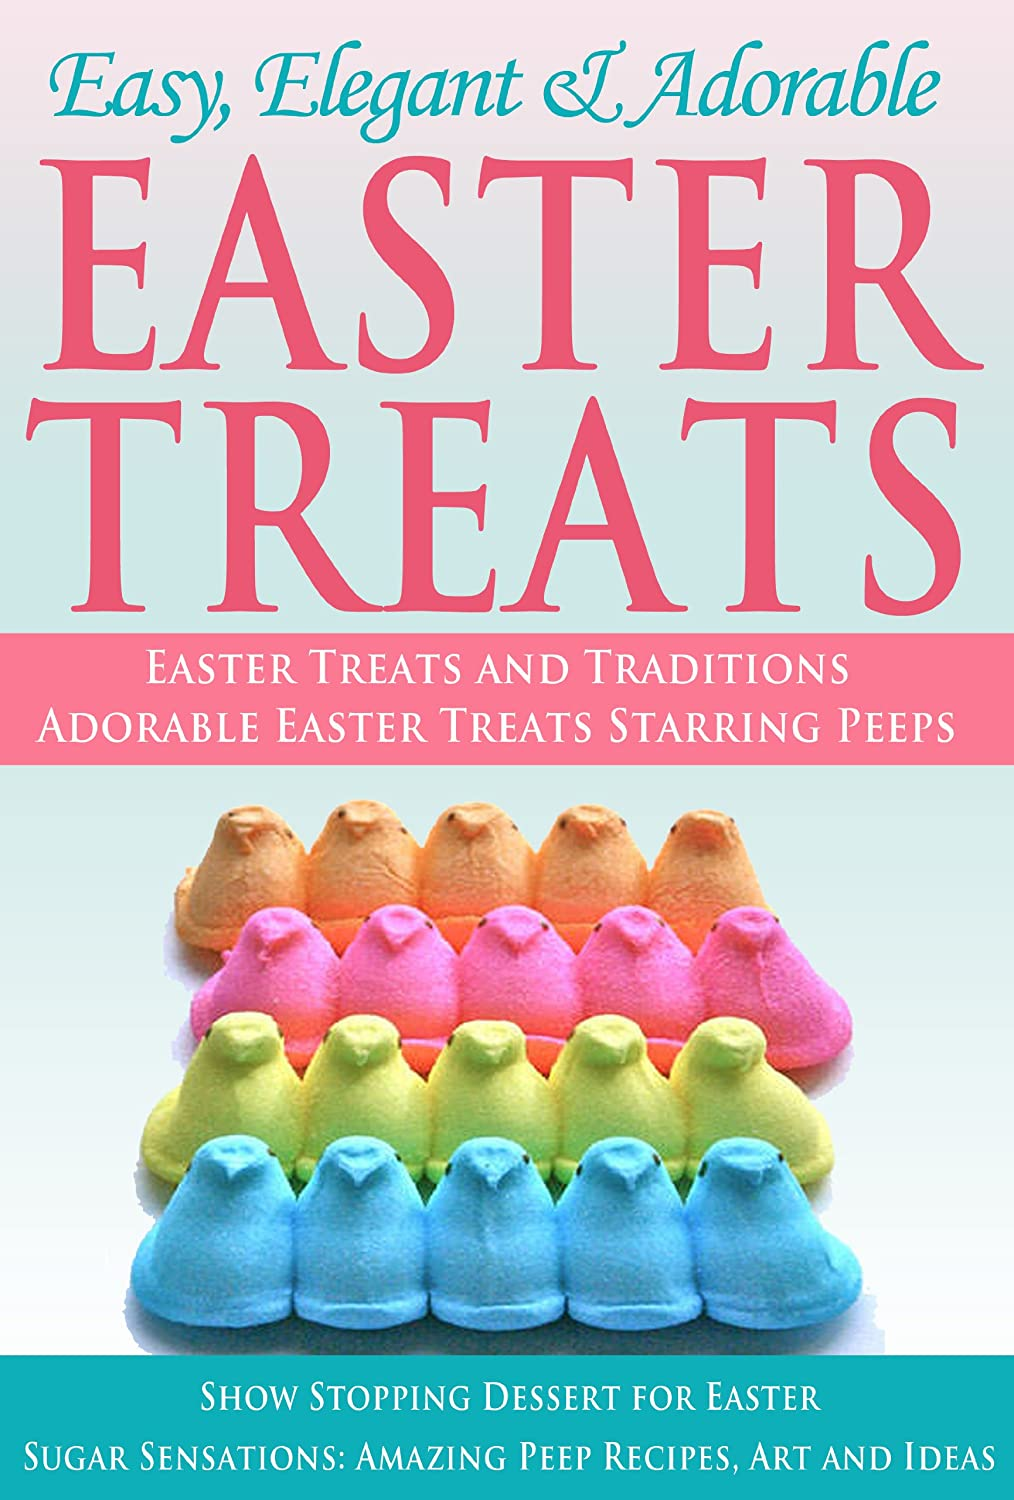 Easy, Elegant and Adorable Easter Treats